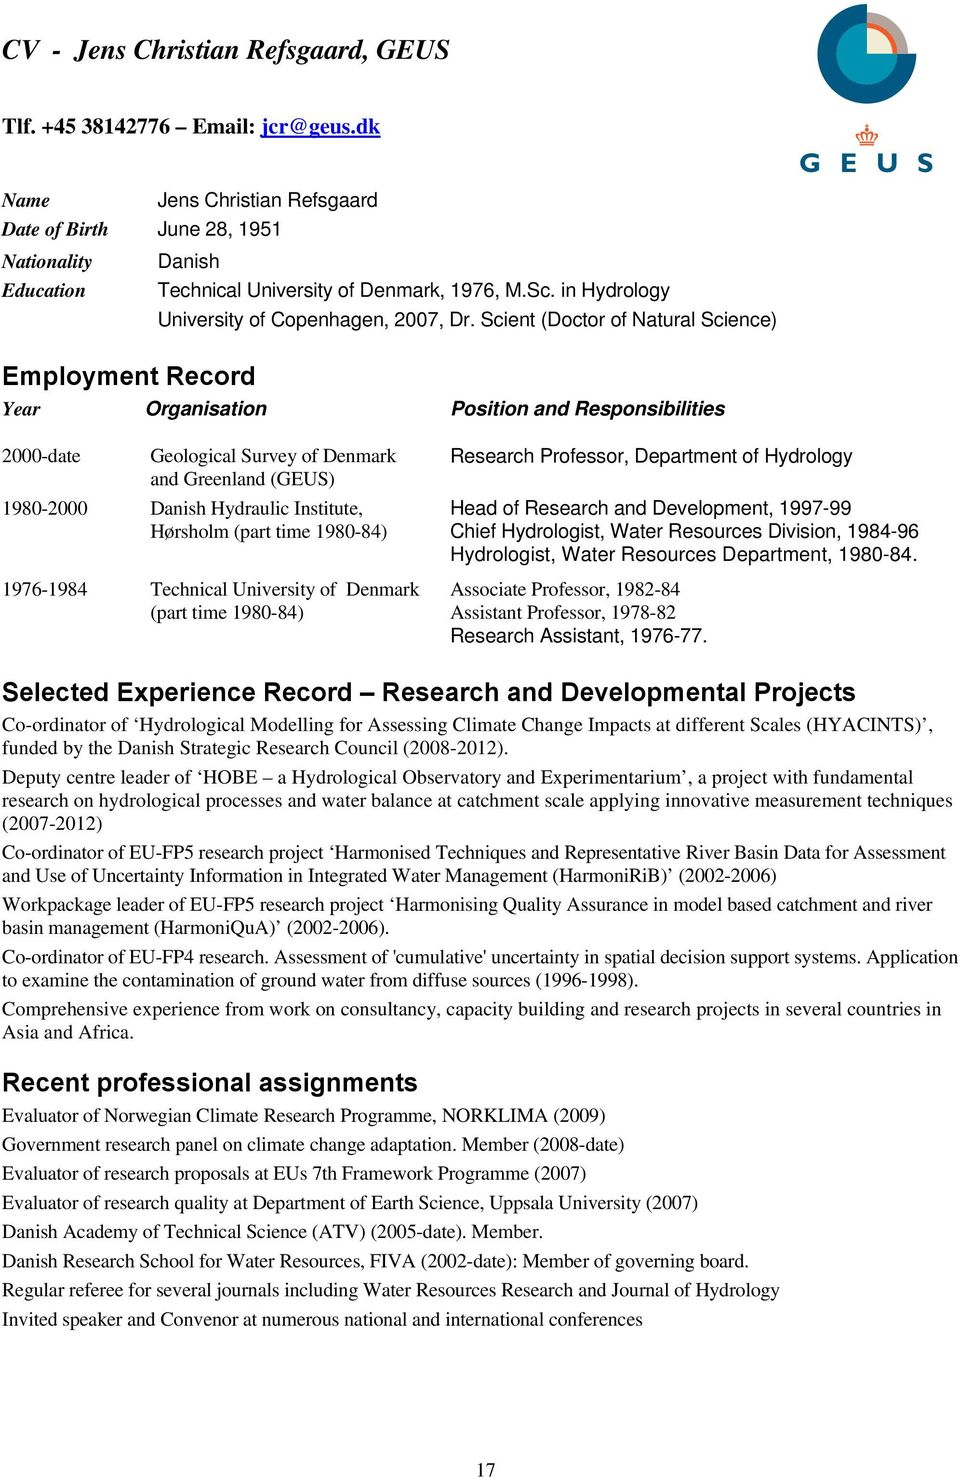 Scient (Doctor of Natural Science) G E U S Employment Record Year Organisation Position and Responsibilities 2000-date Geological Survey of Denmark and Greenland (GEUS) 1980-2000 Danish Hydraulic